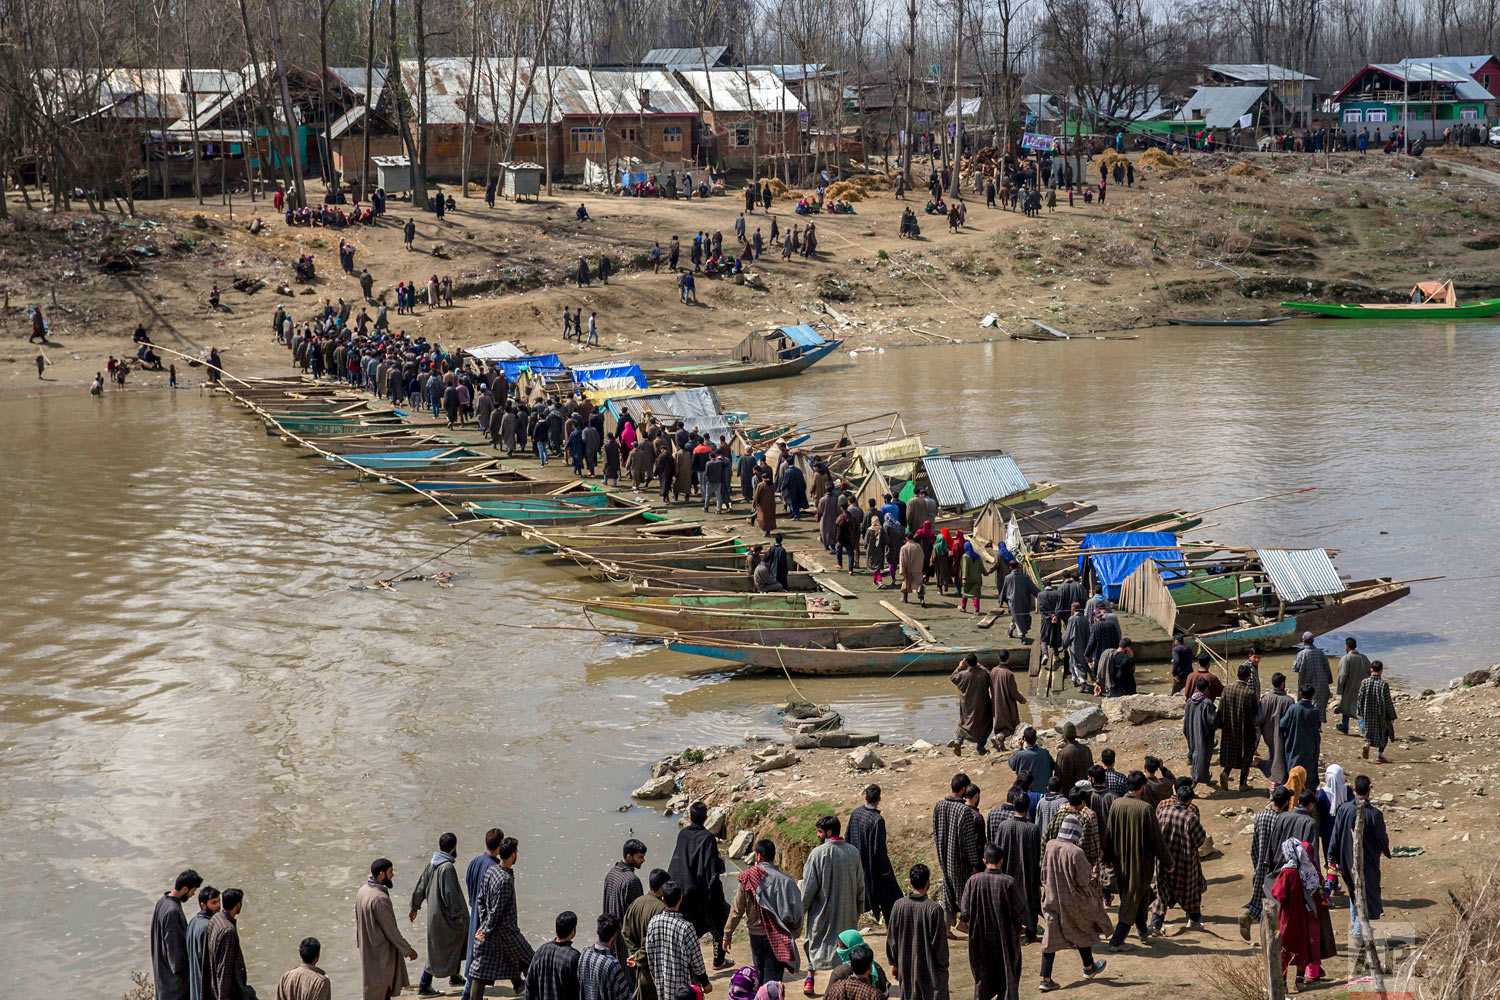 Kashmiri villagers walk on a temporary bridge made by lining up boats forming pathway across the river to attend the funeral of Shabir Ahmad, a suspected rebel, in Awantipora, 30 kilometrers (18 miles) south of Srinagar, Indian-controlled Kashmir, on Friday, March 16, 2018. Rebels have been fighting Indian rule since 1989, demanding Kashmir be made part of Pakistan or become an independent country. India accuses Pakistan of arming and training the rebels, a charge Pakistan denies. (AP Photo/Dar Yasin)